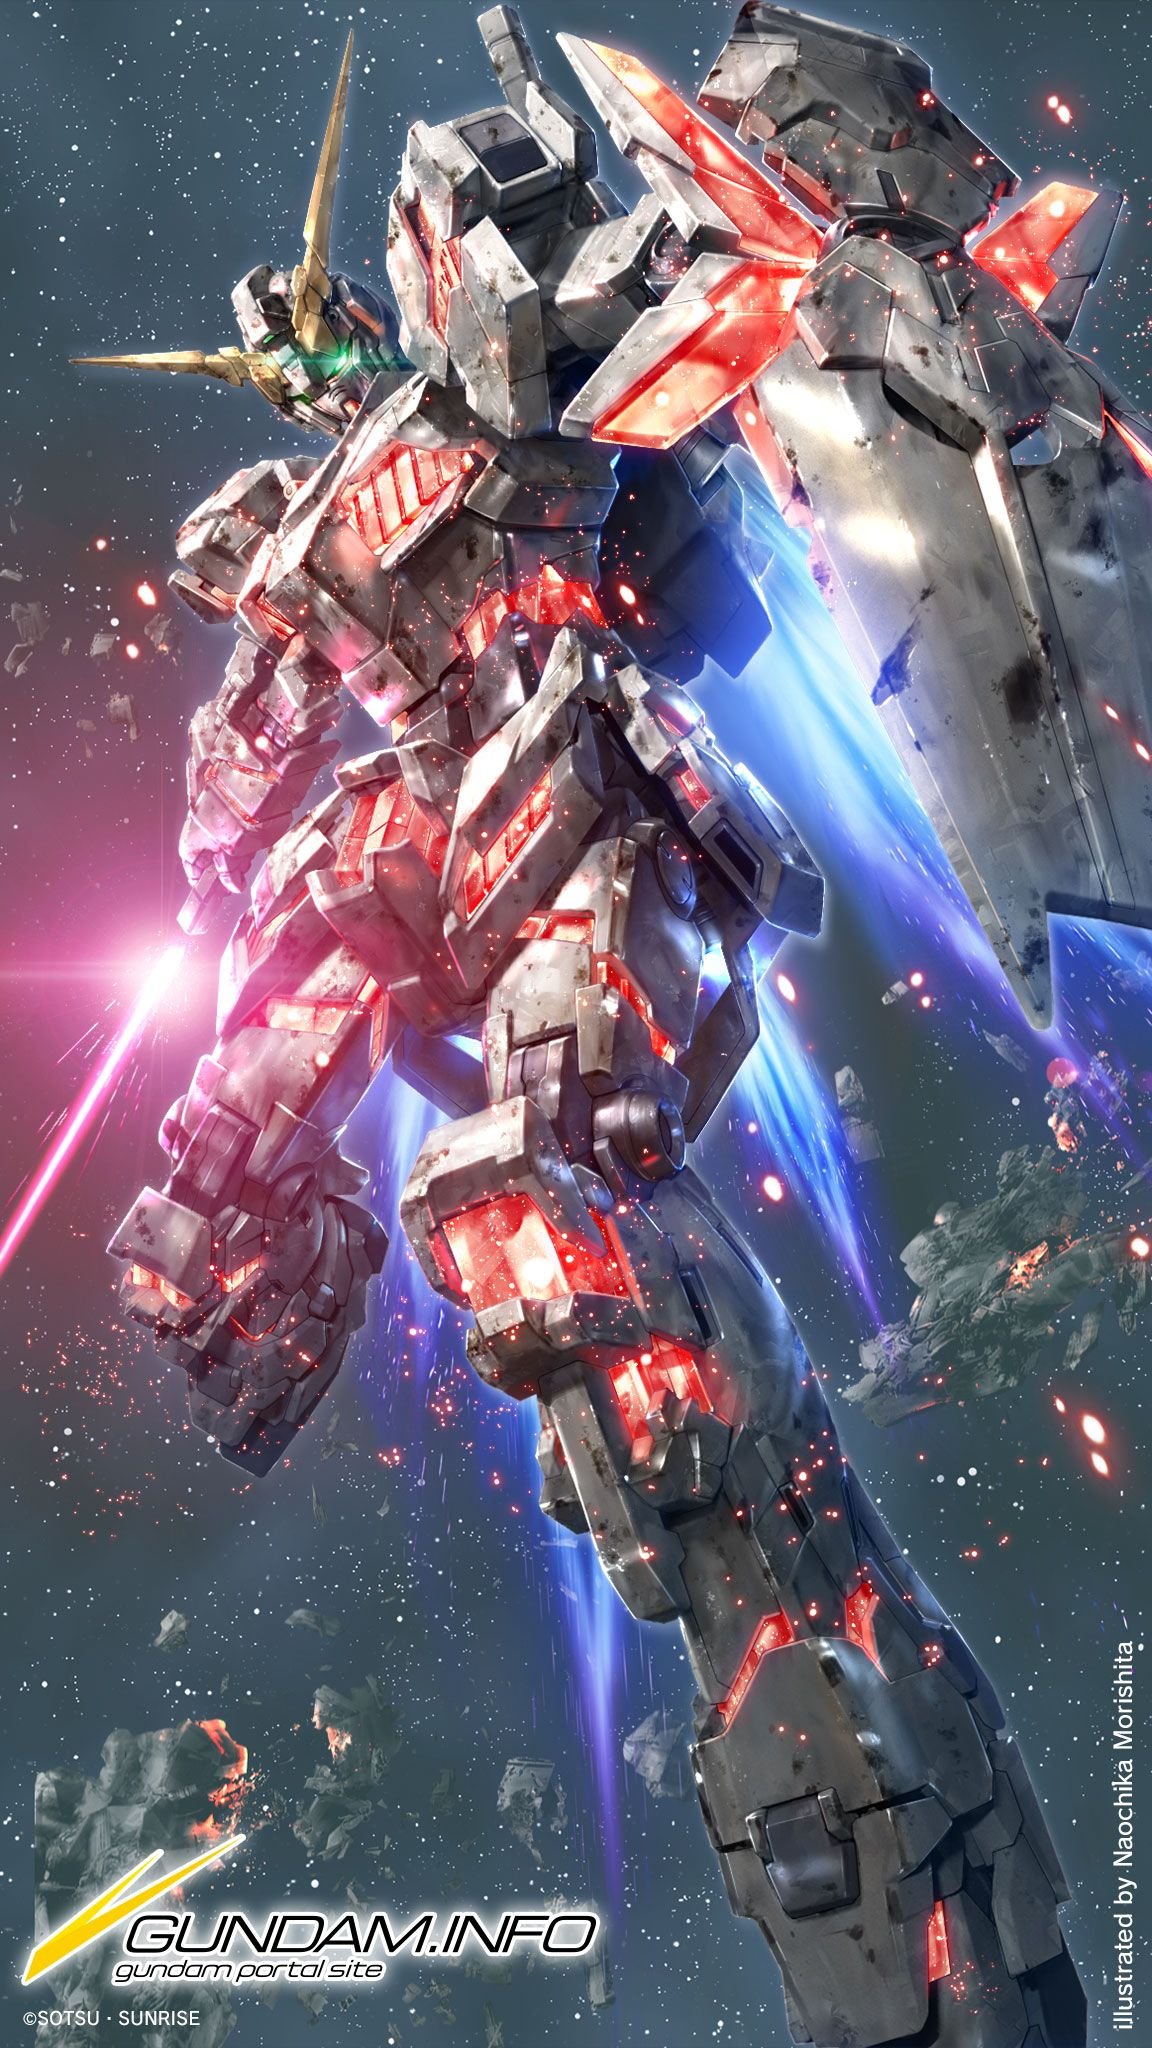 Unicorn Gundam Gundam Wallpapers Gundam Art Unicorn Gundam